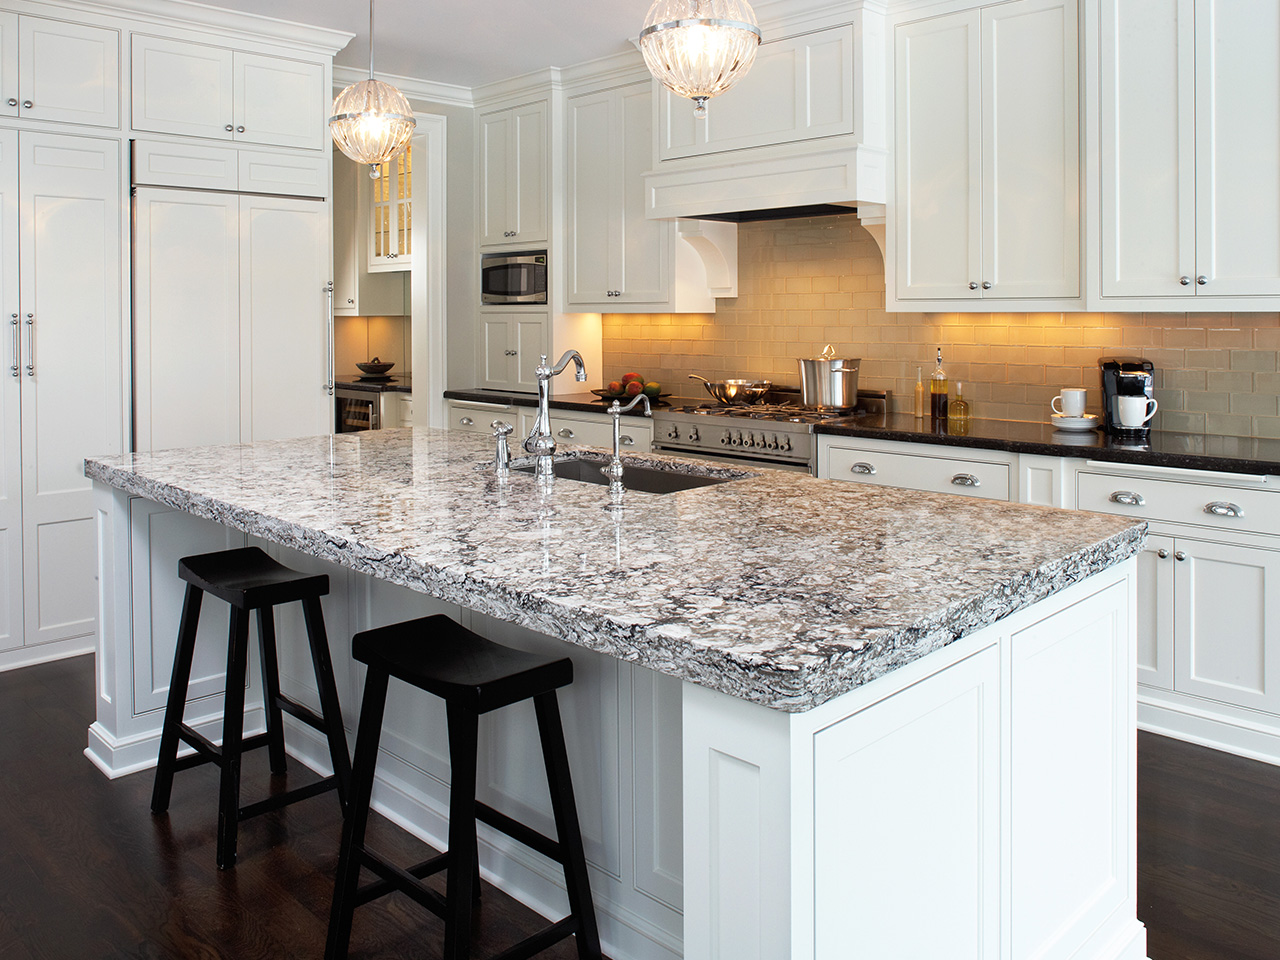 A Sane Approach To Finding The Perfect Countertop Revuu